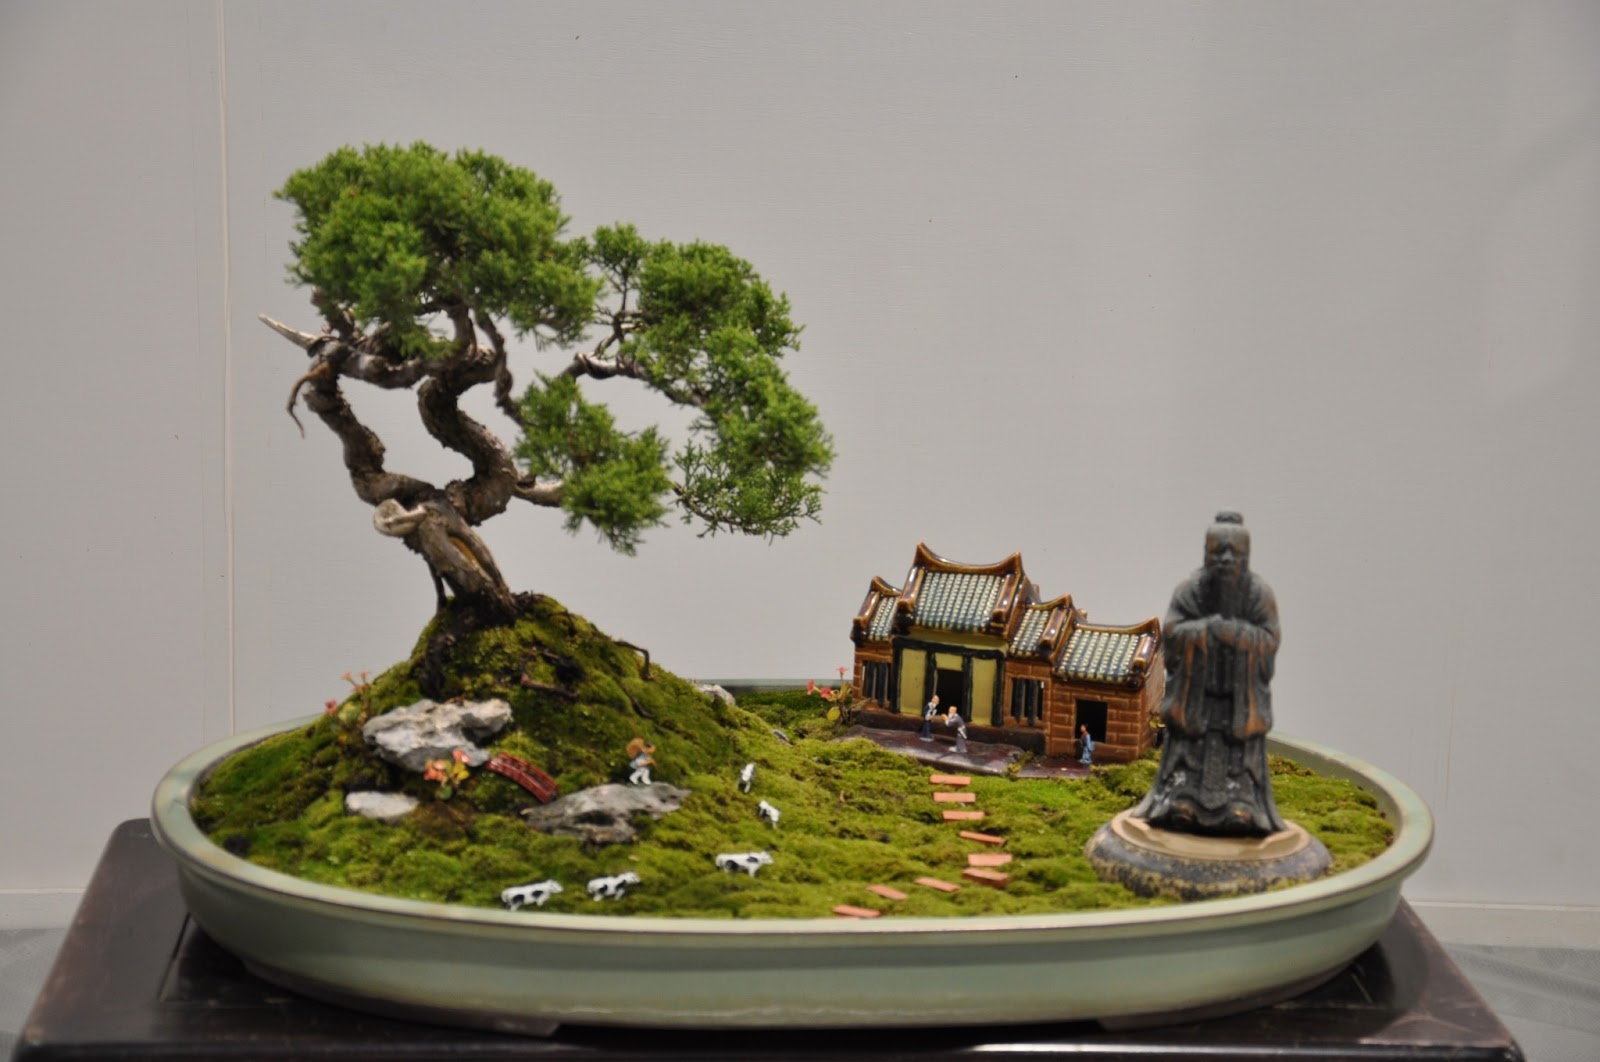 All In One Bonsai And Ceramics January 2013